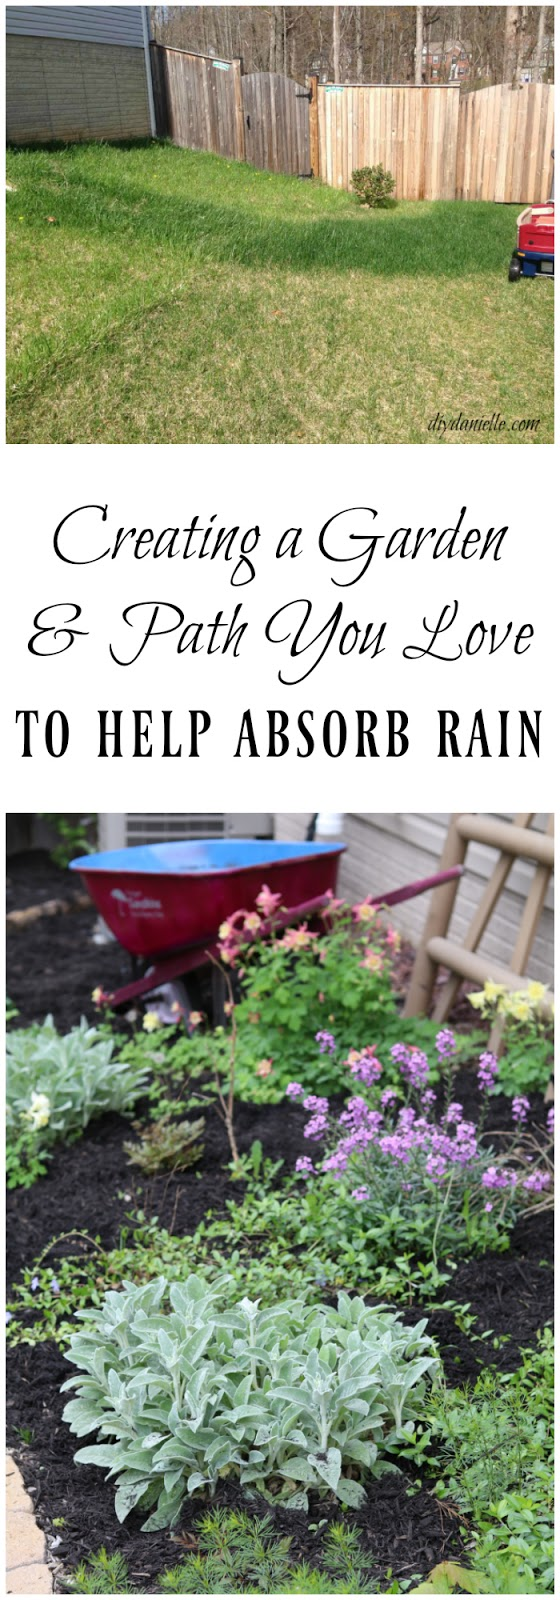 Creating a garden and path you love to help absorb rain and improve soil drainage.